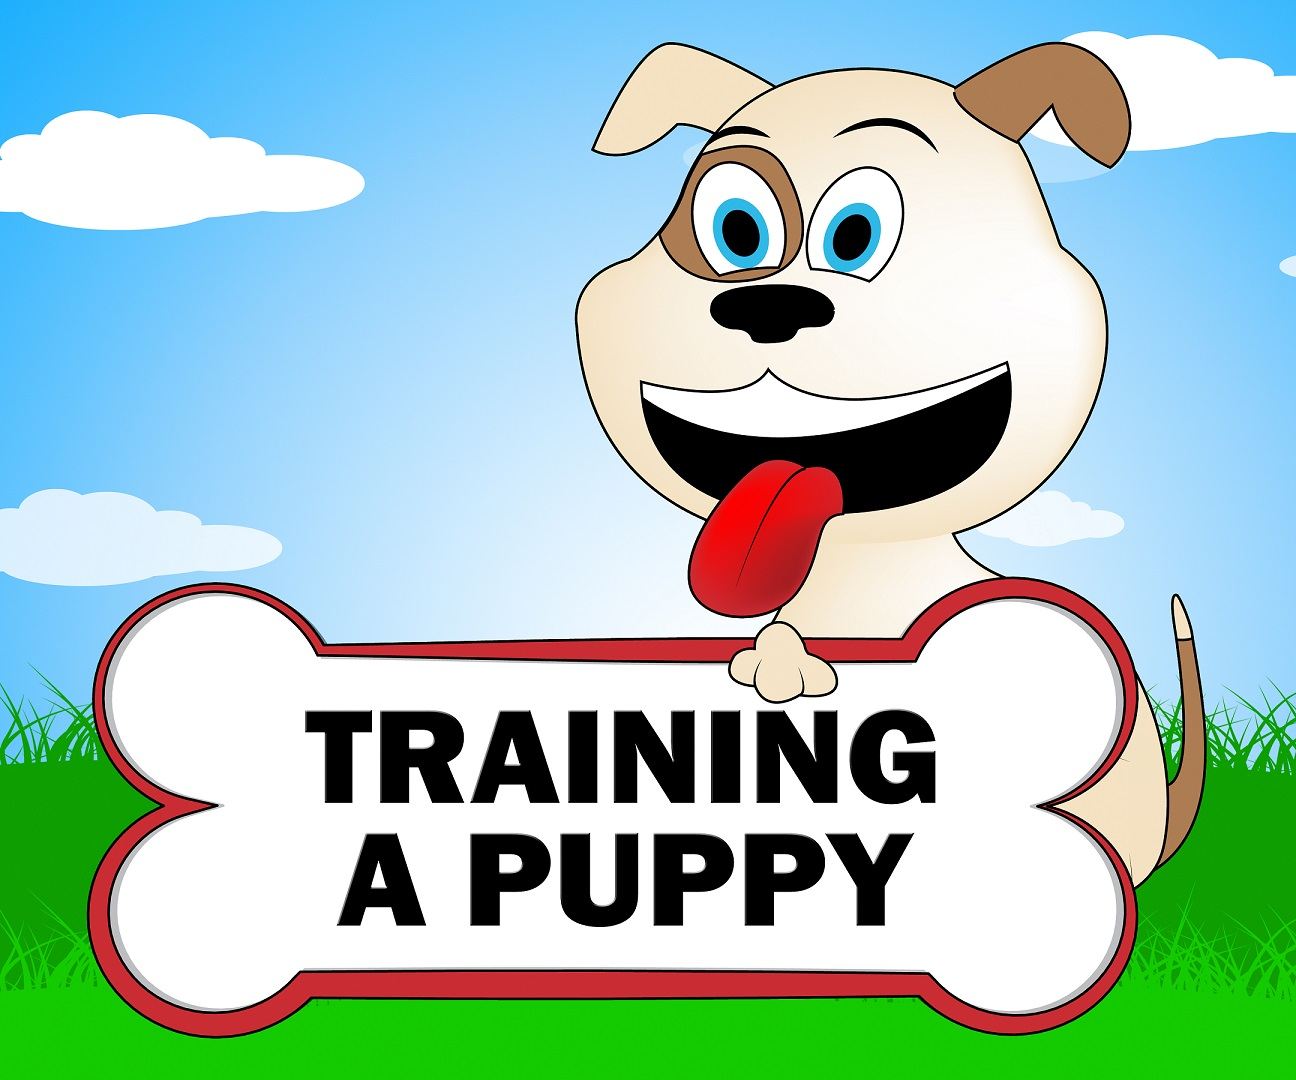 training-a-puppy